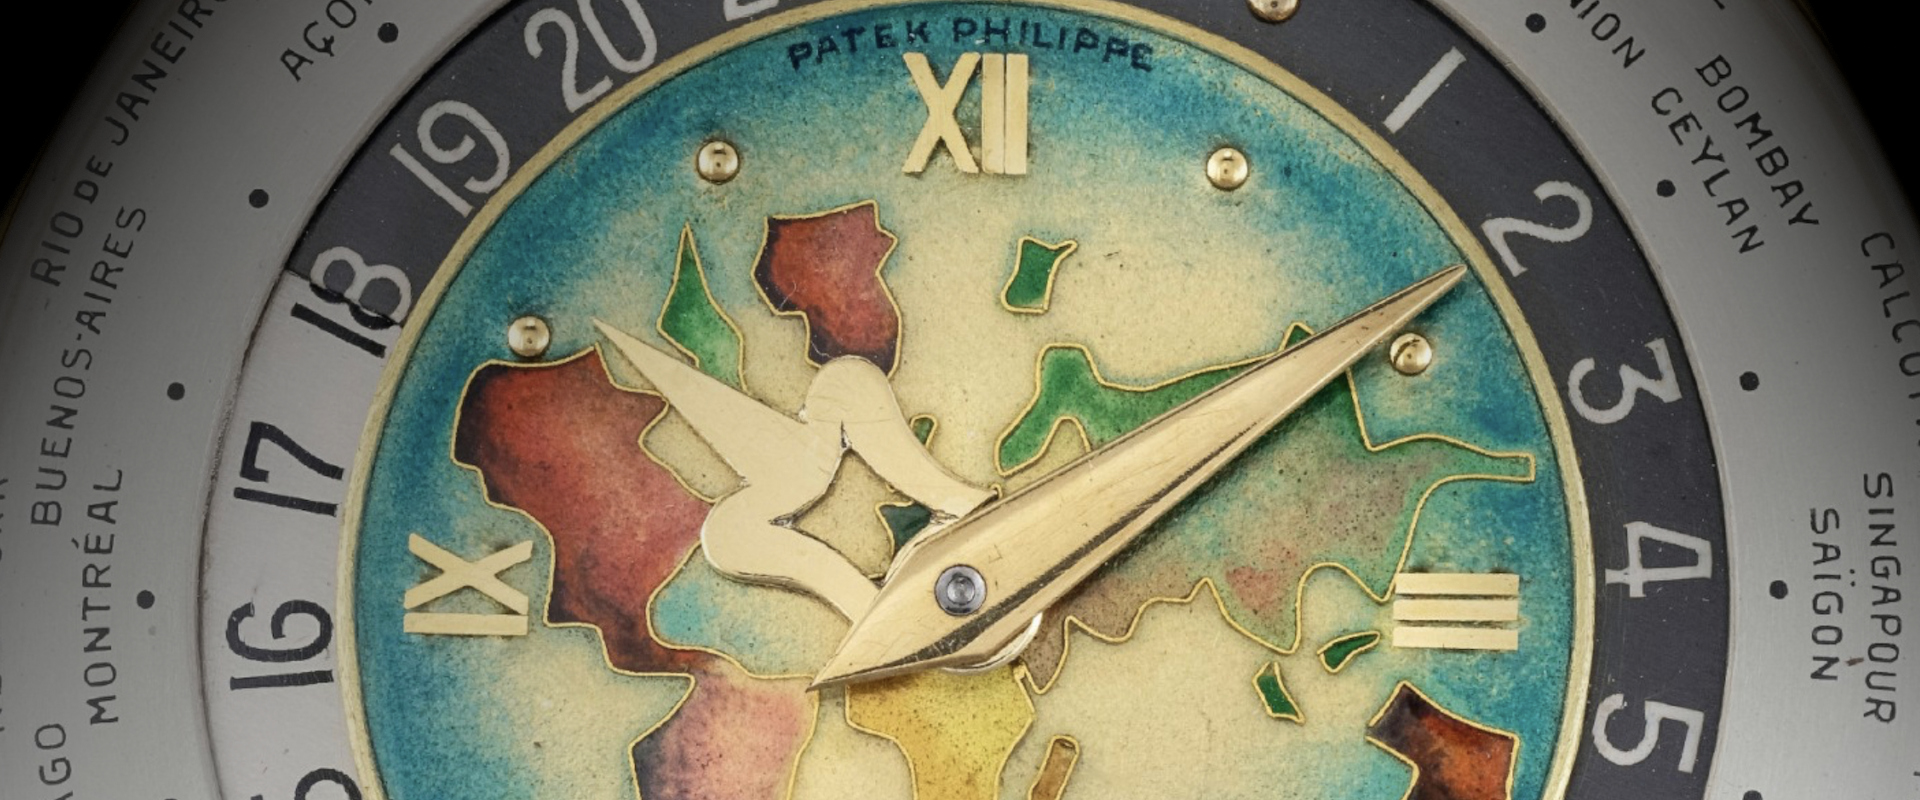 Patek Philippe World Time Ref. 605 HU